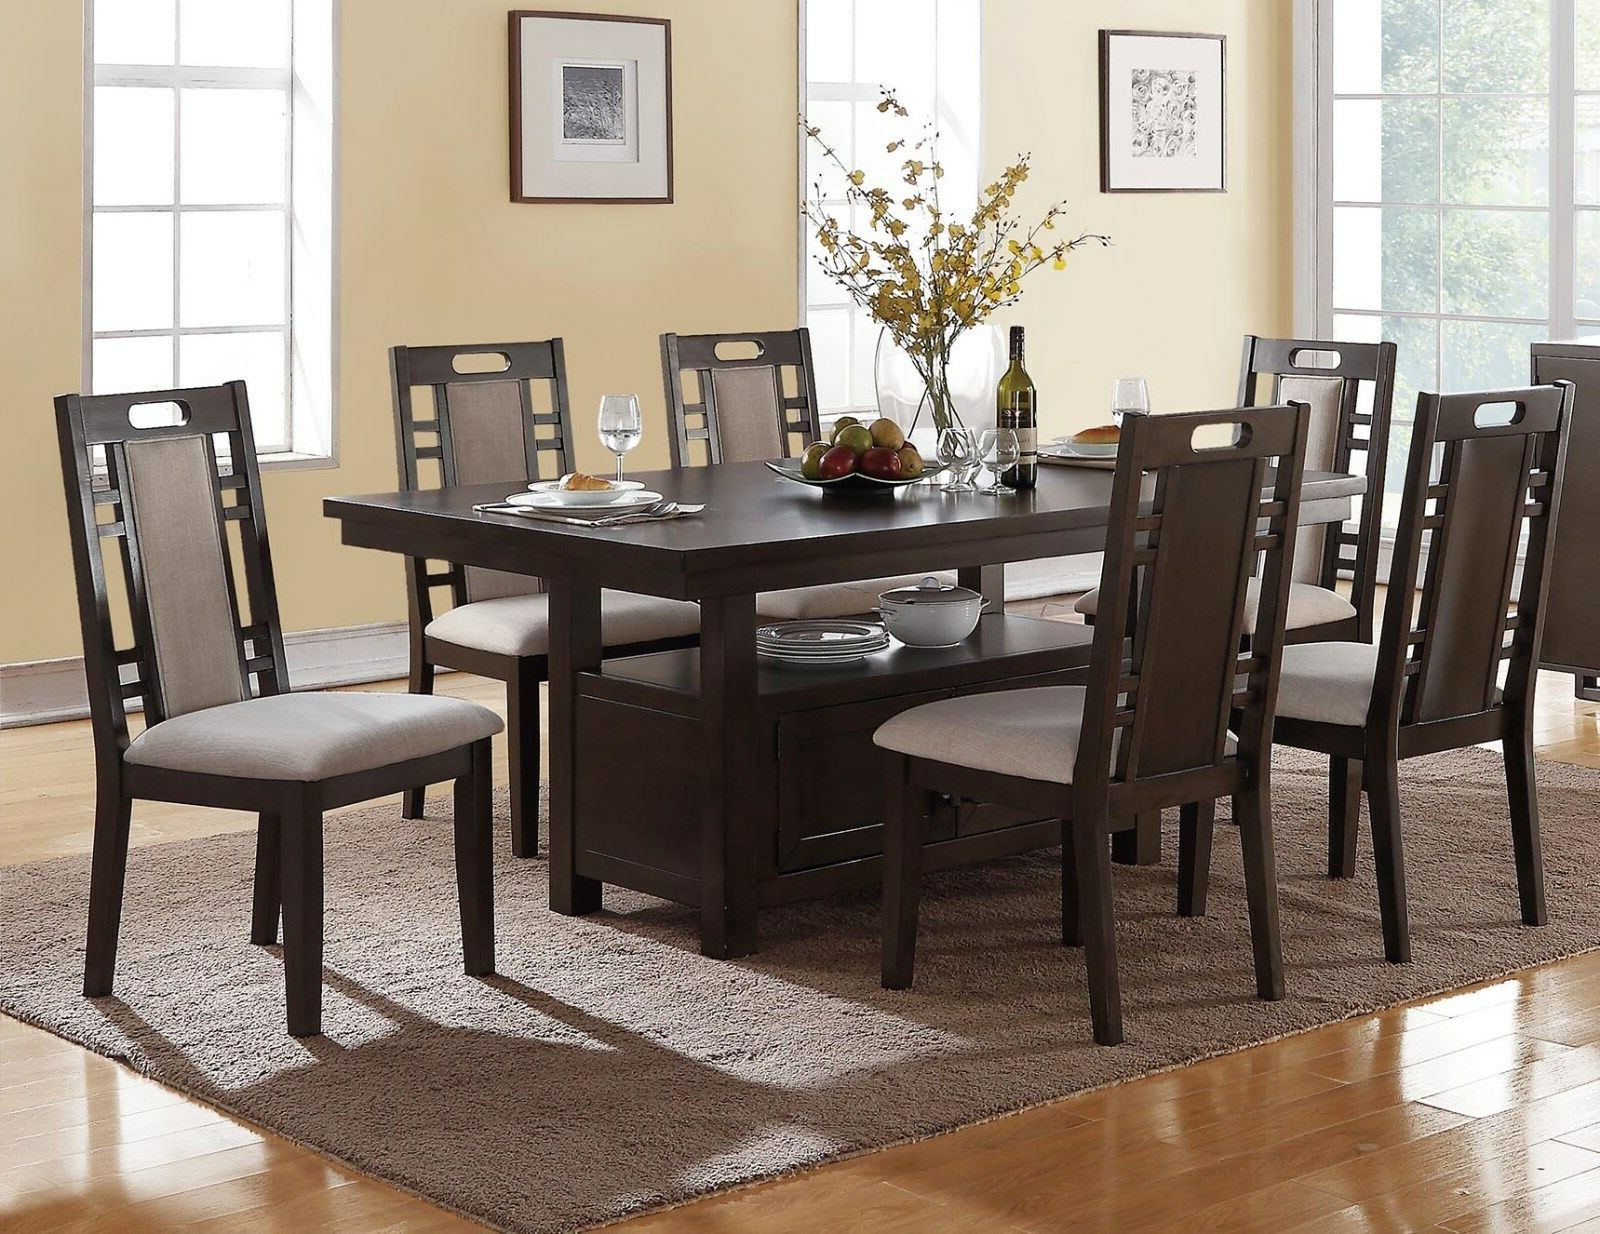 Well Liked Charcoal Transitional 6 Seating Rectangular Dining Tables In Transitional Camden 7Pc Charcoal Gray Wood Dining Table Set W/ Storage  Cabinet (Gallery 6 of 30)